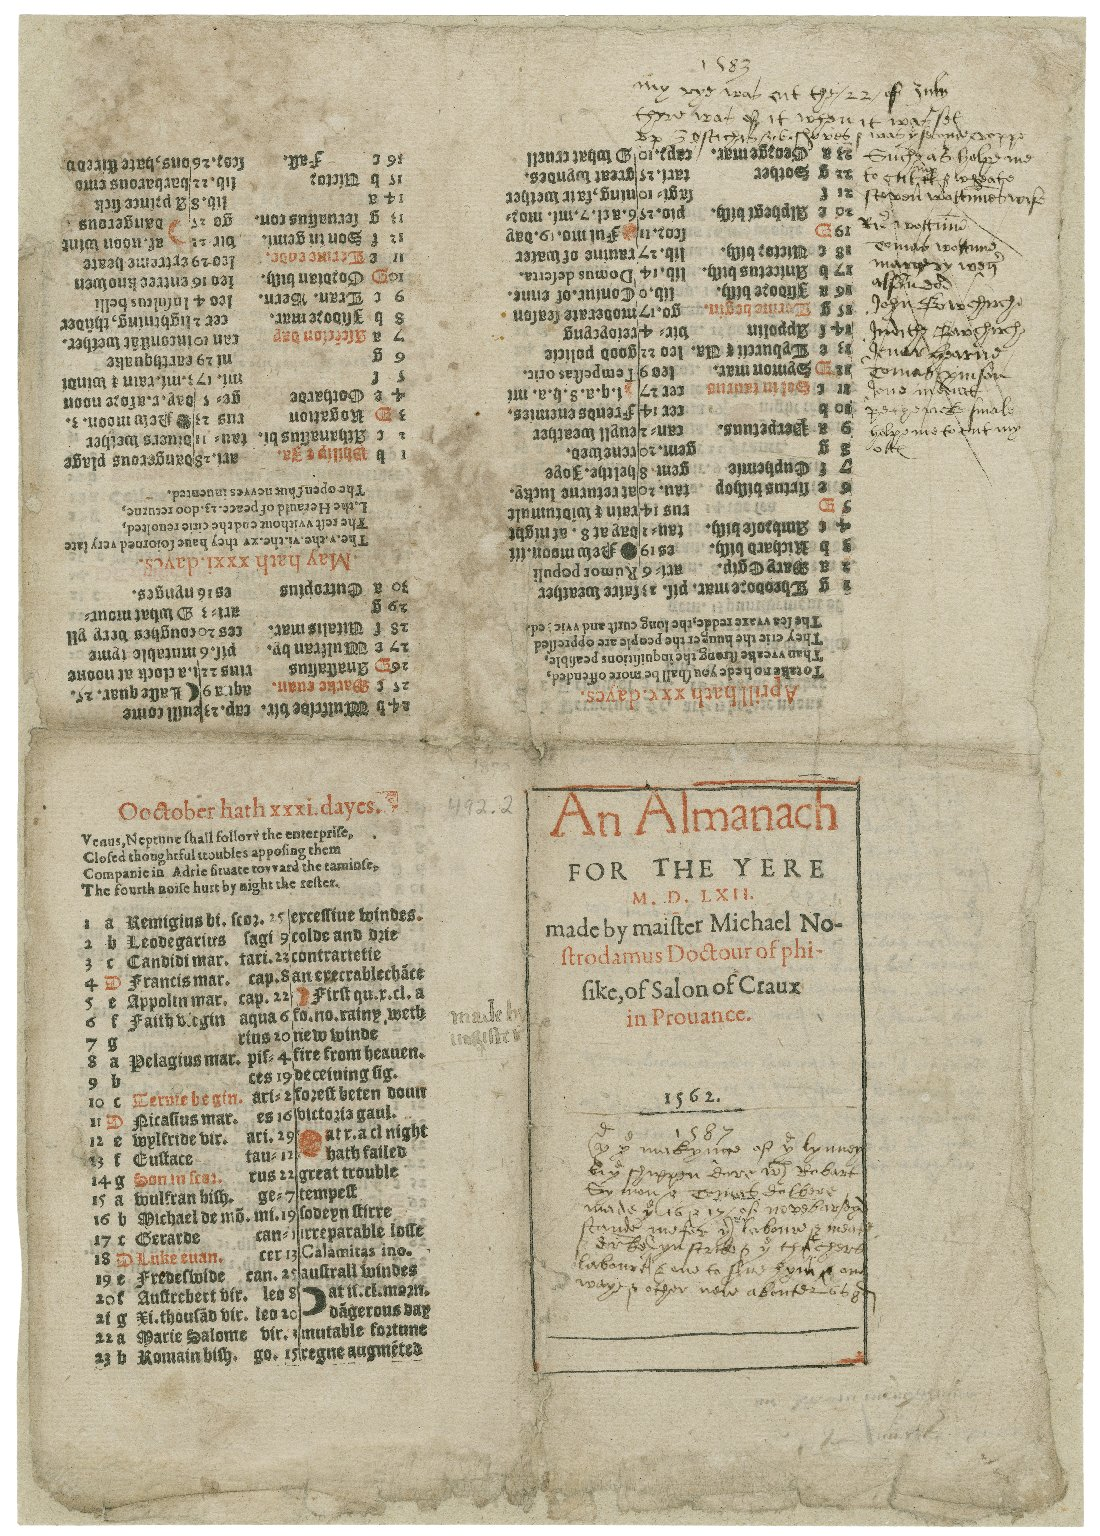 But leaves of a paper come from sheets of paper (here's an almanac that stayed uncut, even as it was annotated).